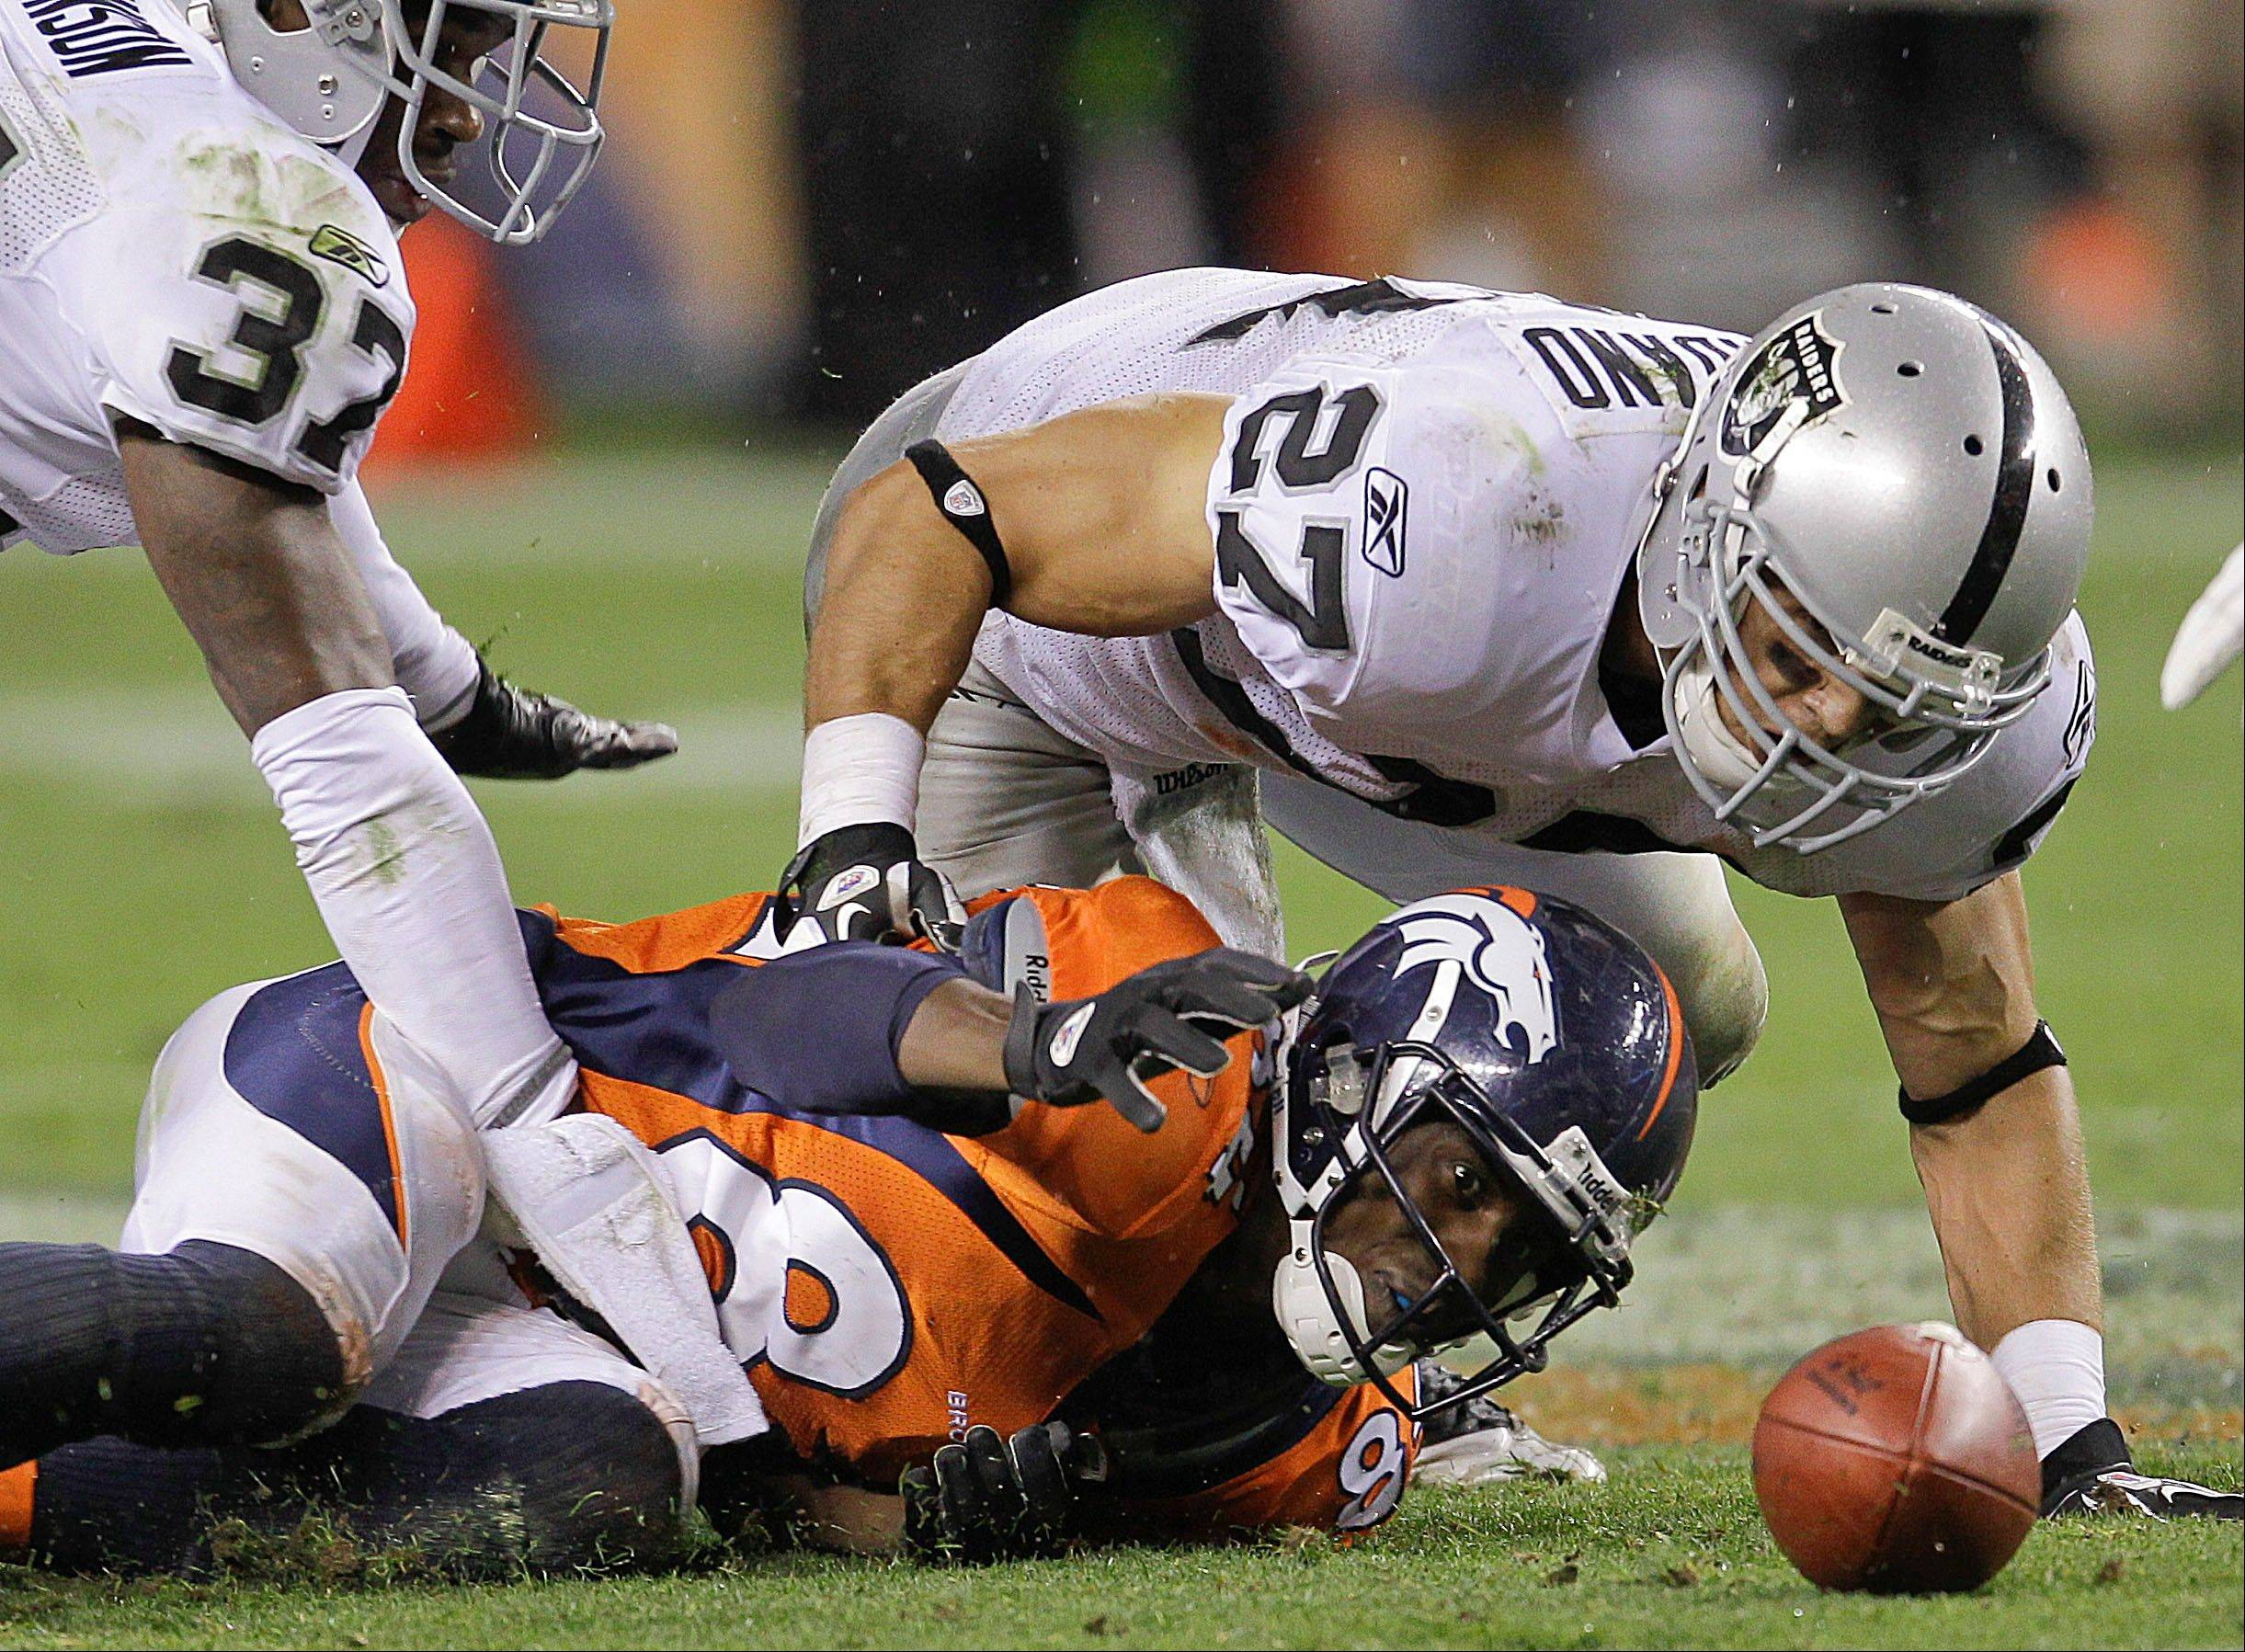 Denver Broncos wide receiver Brandon Lloyd, and Oakland Raiders defensive backs Matt Giordano (27) and Chris Johnson reach for the ball that Lloyd fumbled in the fourth quarter Monday night in Denver. The Raiders won 23-20.